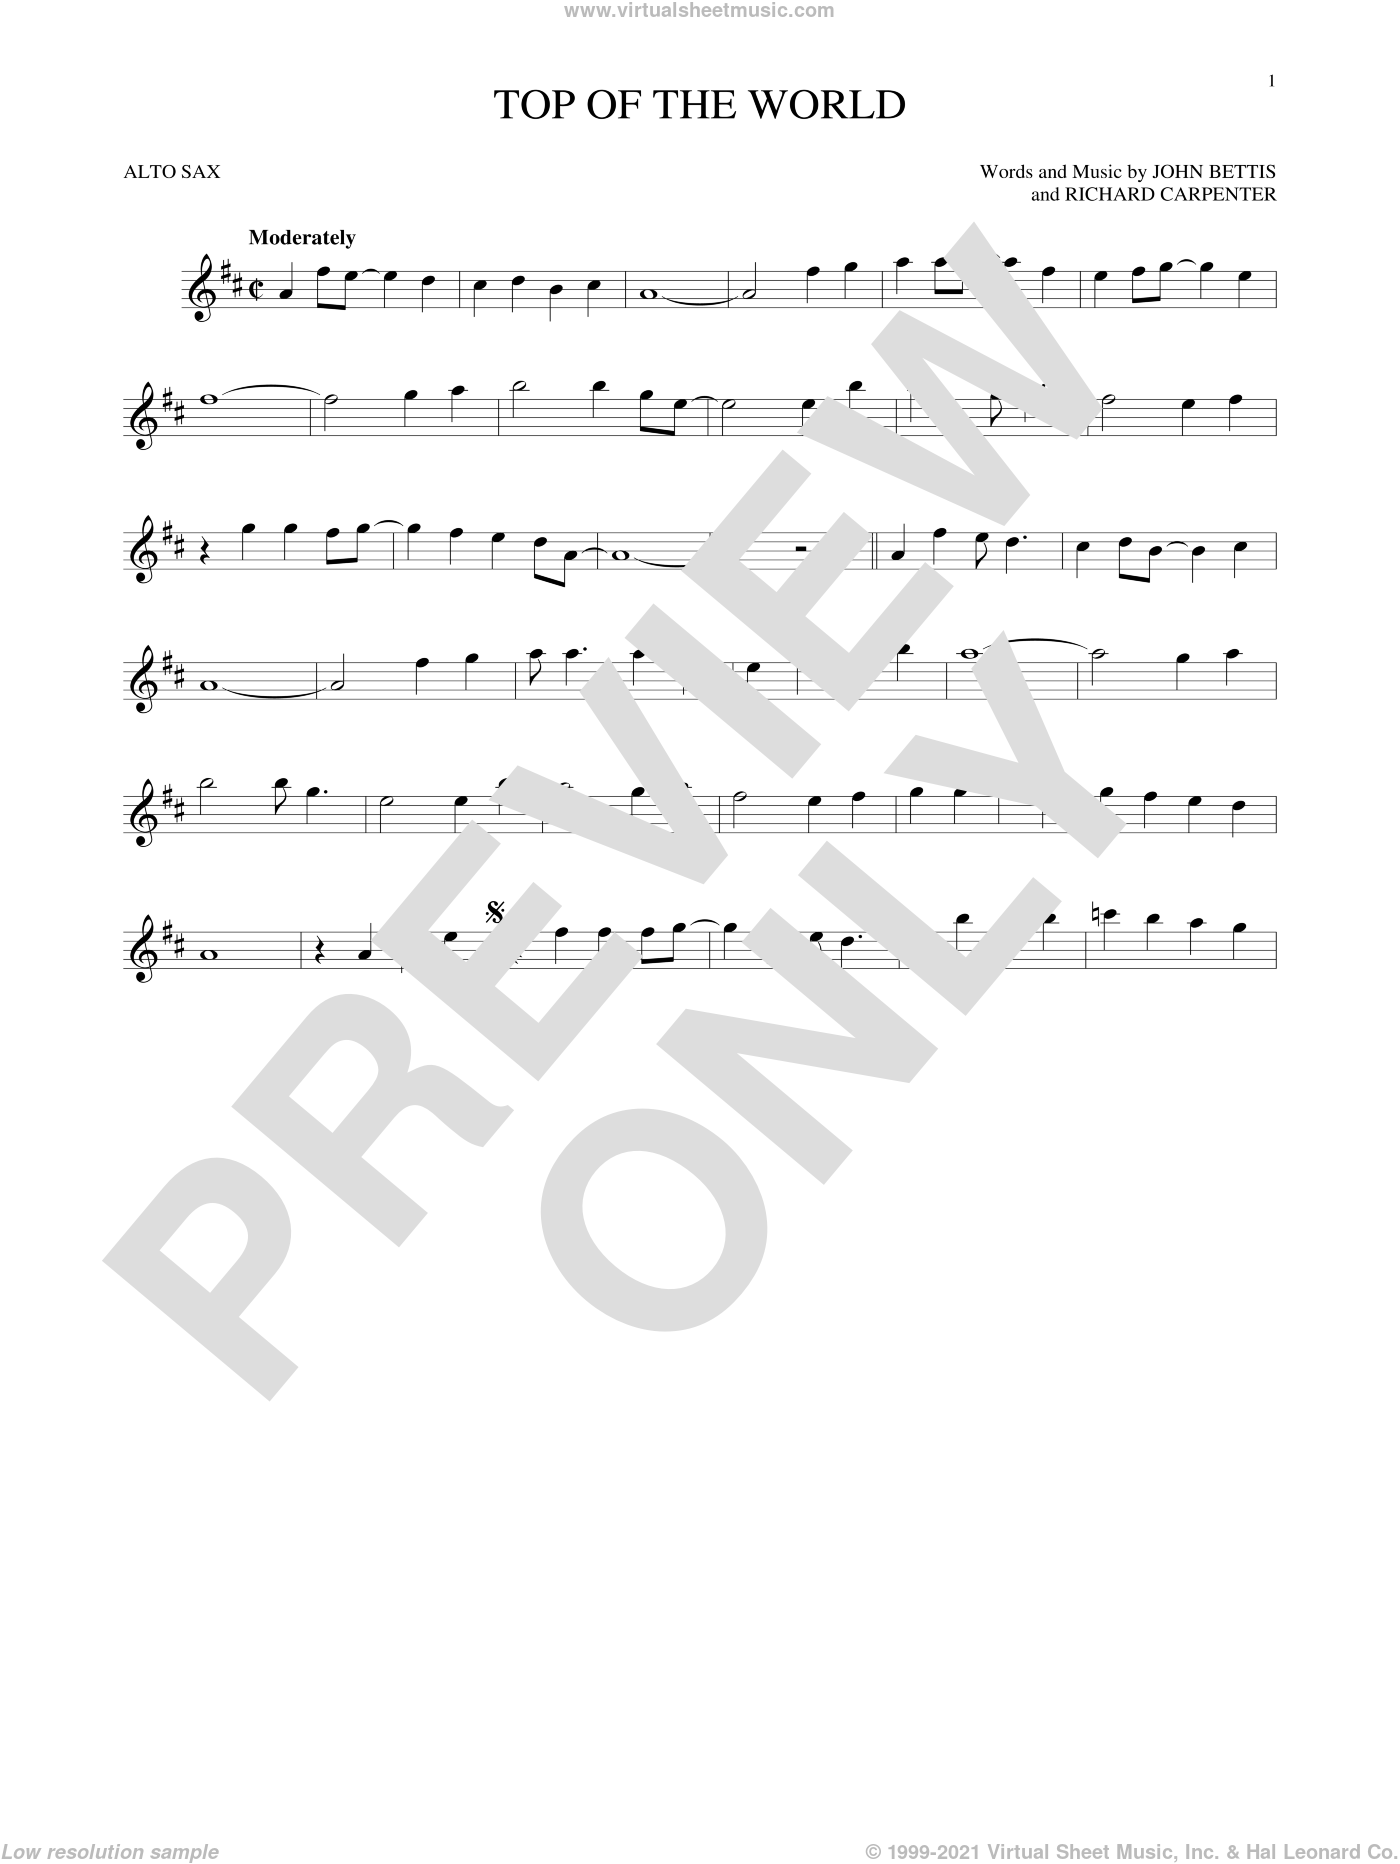 Top Of The World sheet music for alto saxophone solo by John Bettis, Carpenters and Richard Carpenter, intermediate skill level